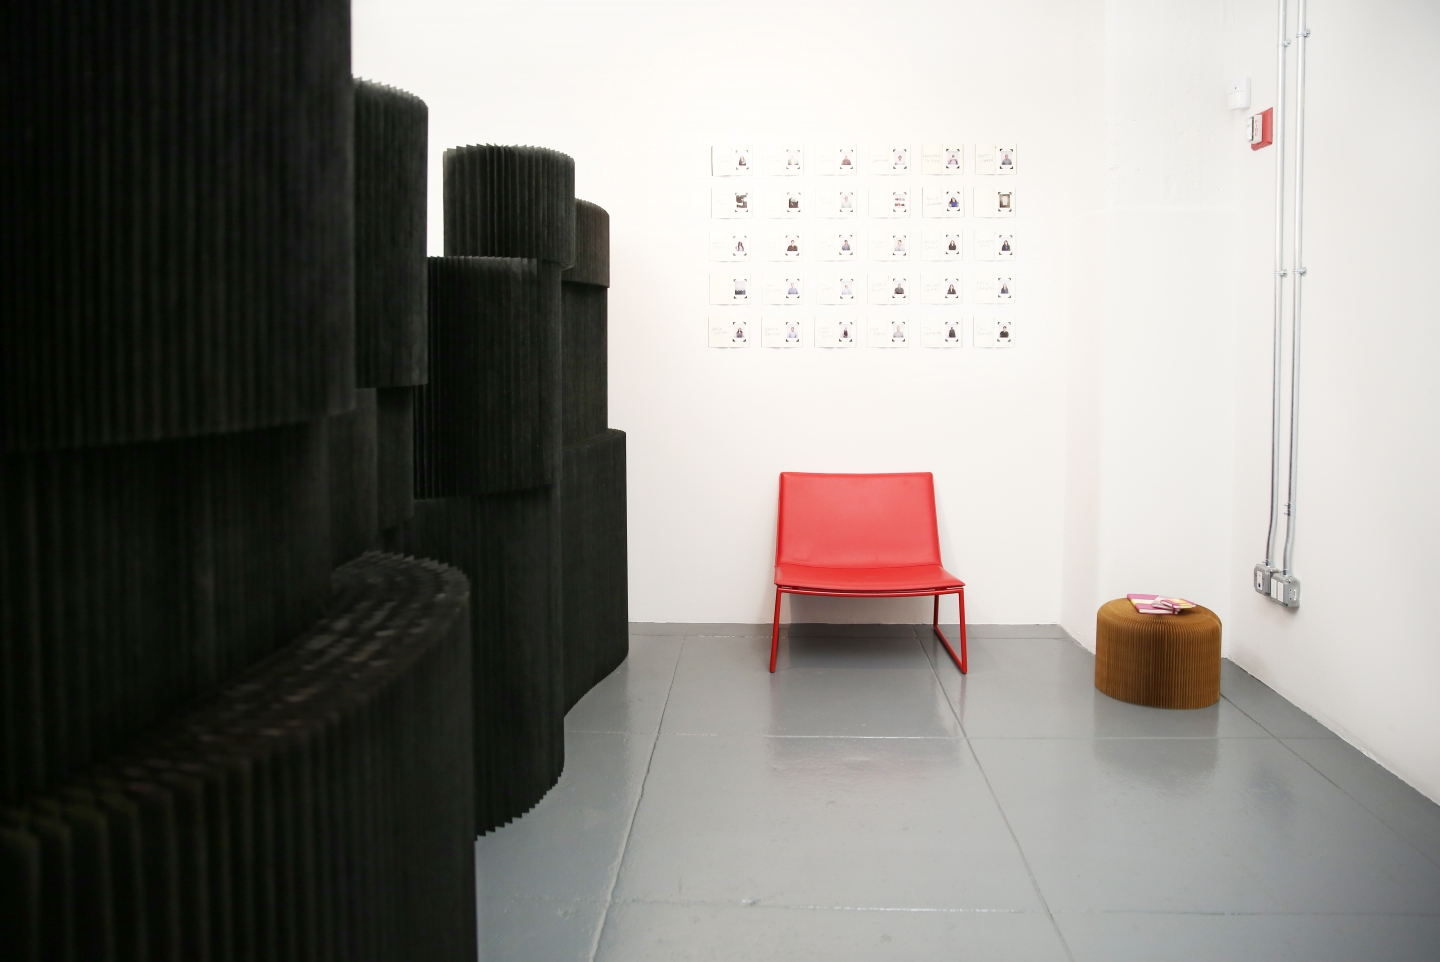 molo black textile softblocks and paper softseating at Moleskine offices in New York